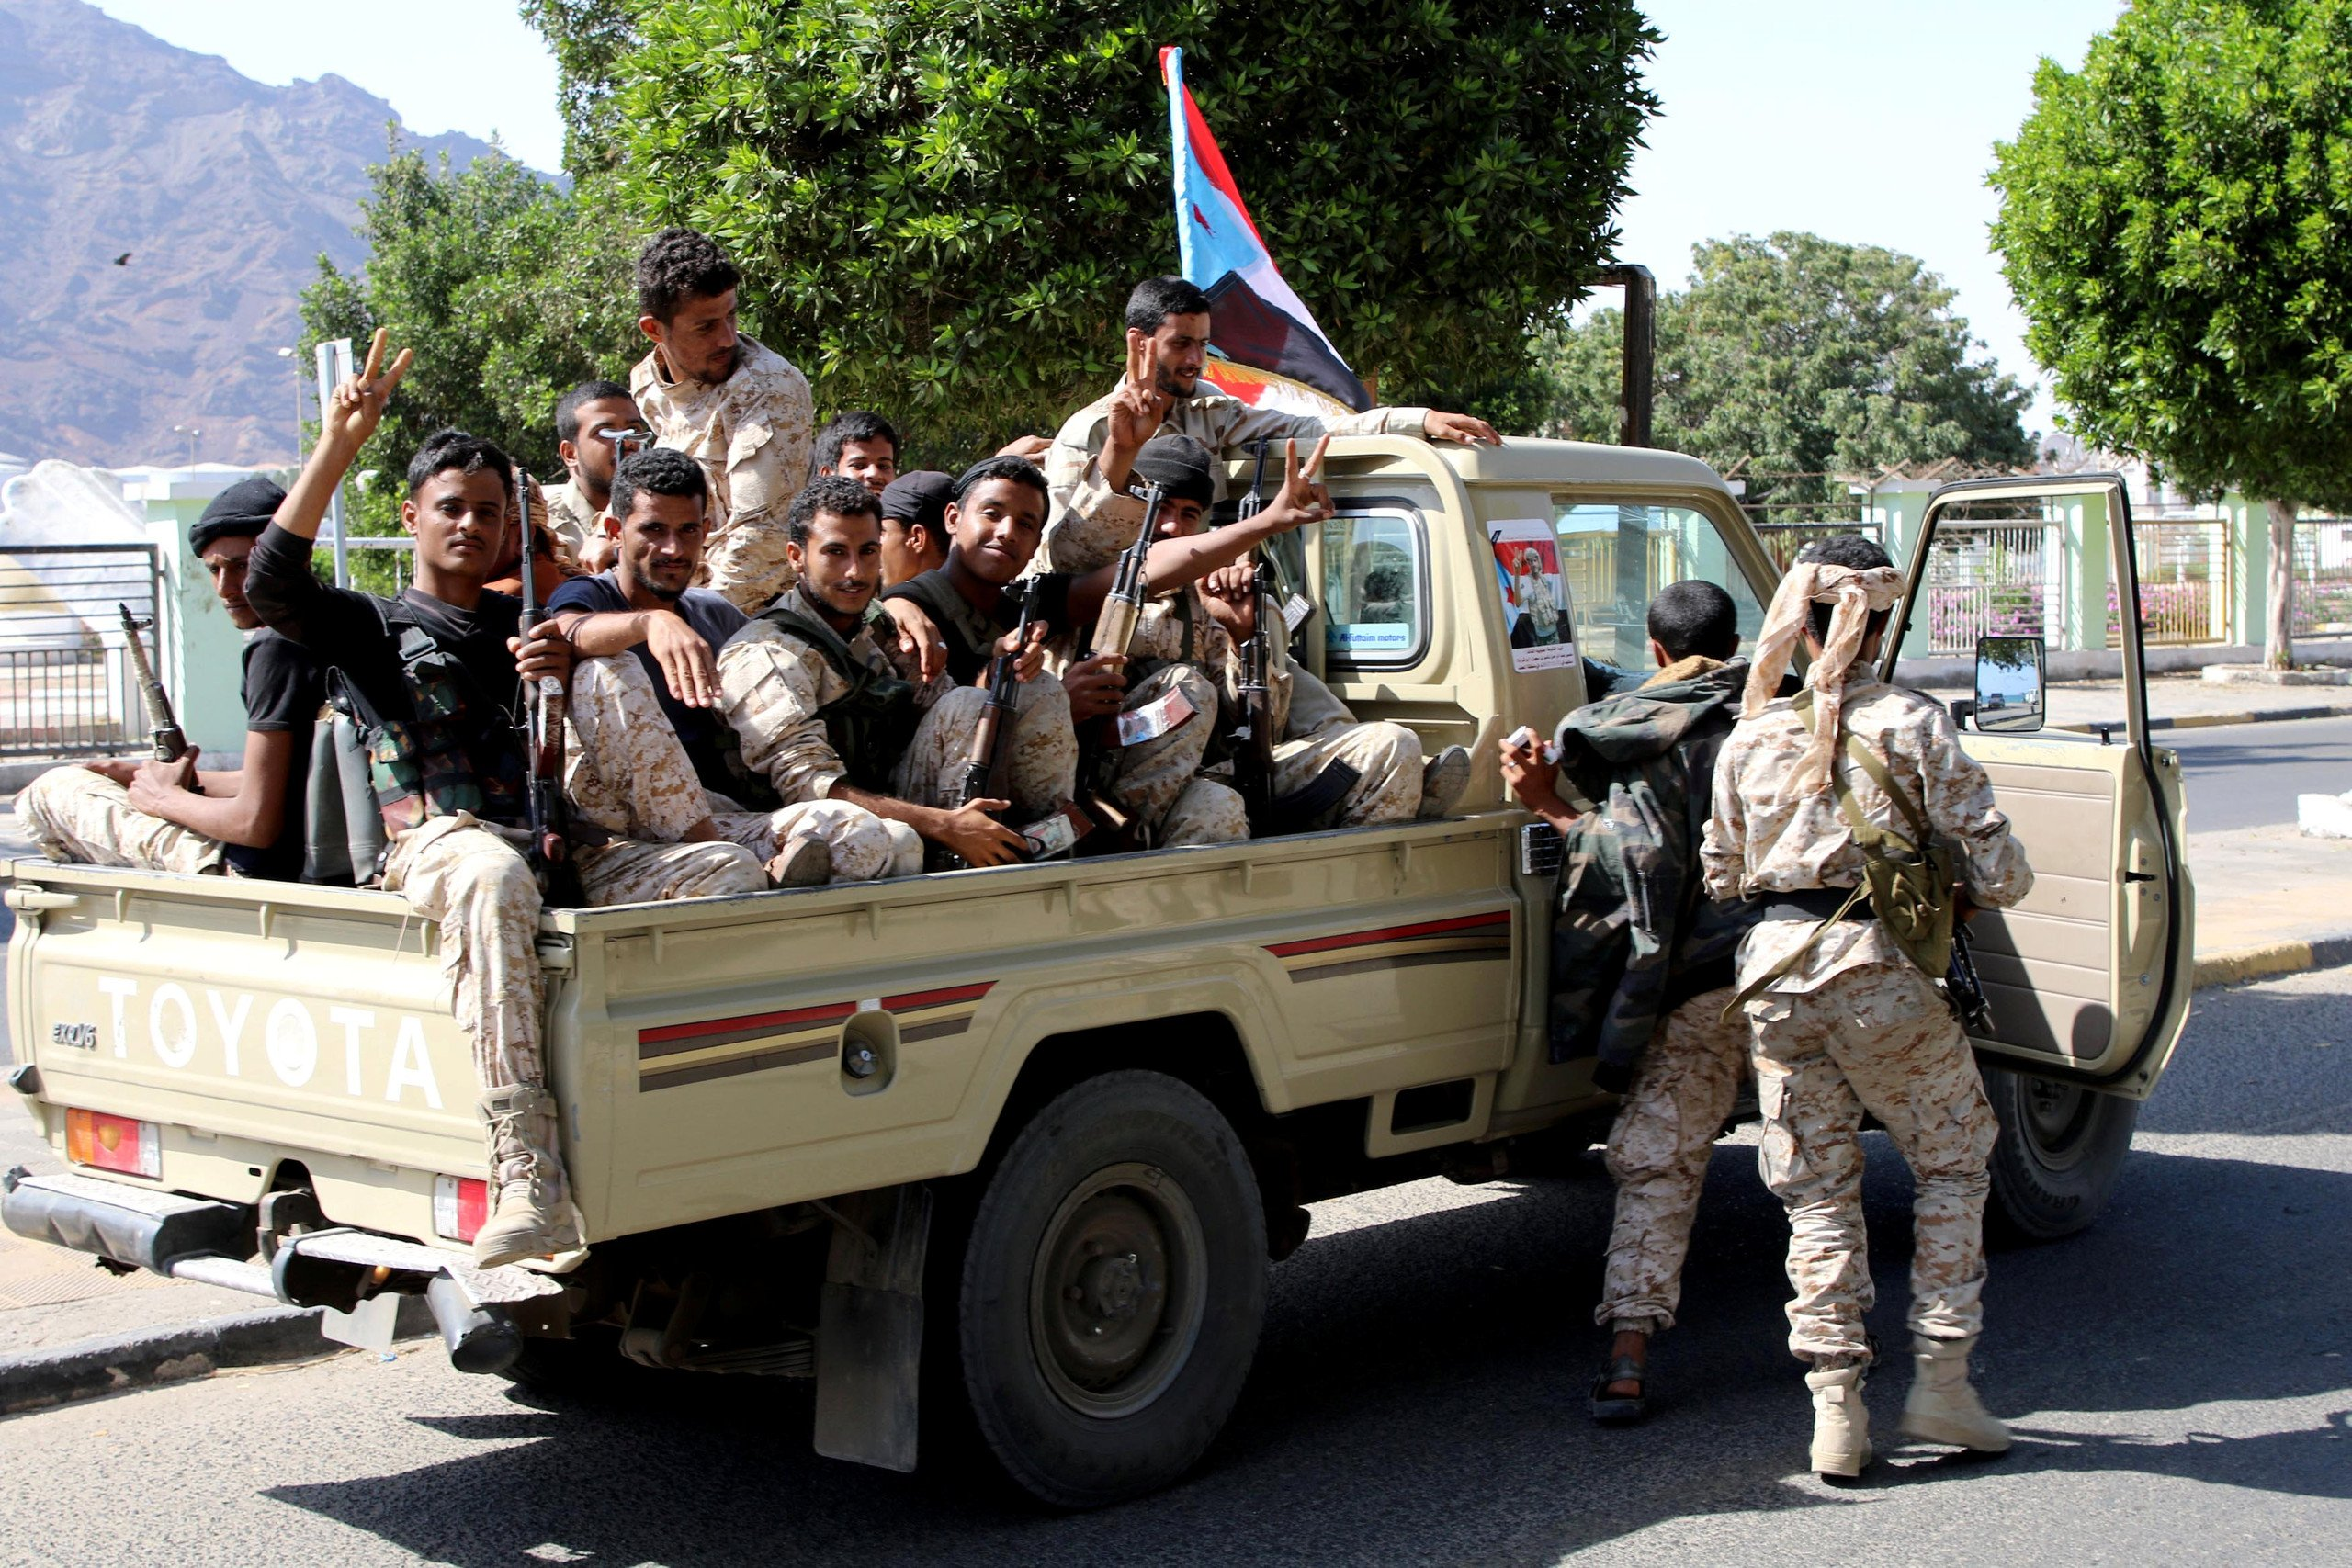 Deportations and Killings in Aden deepen social divide, says Euro-Med